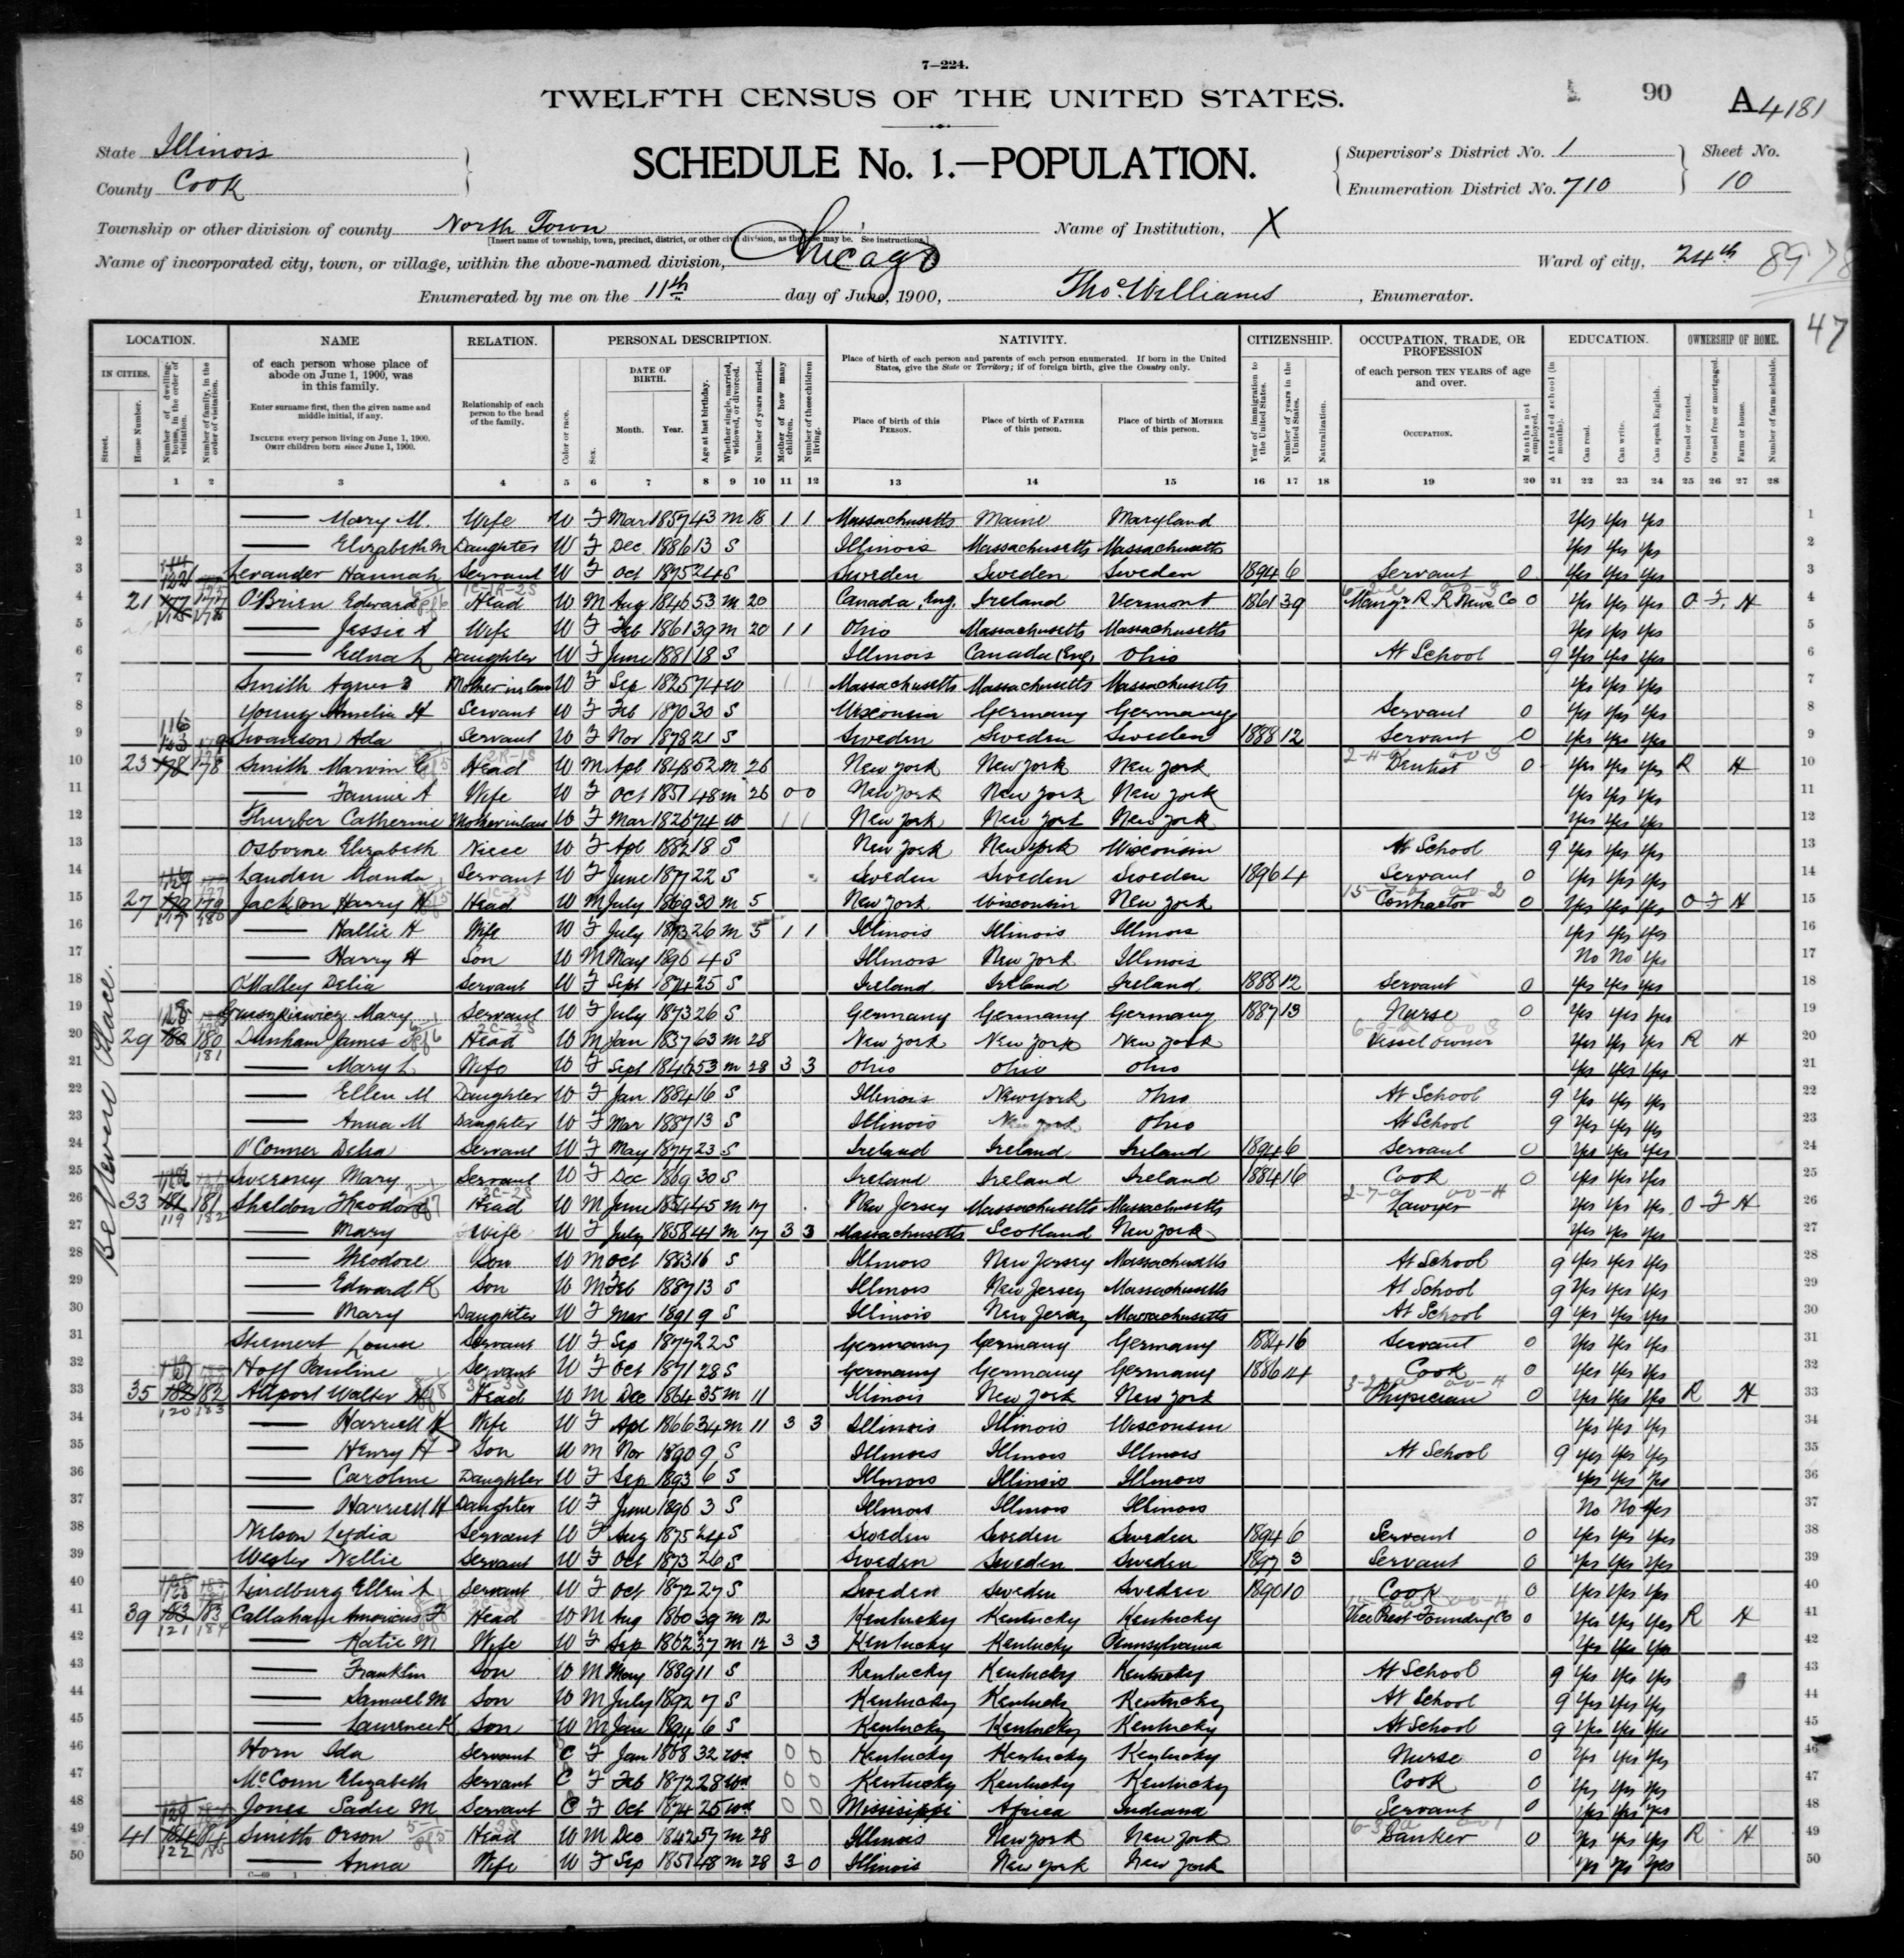 Illinois: COOK County, Enumeration District 710, Sheet No. 10A